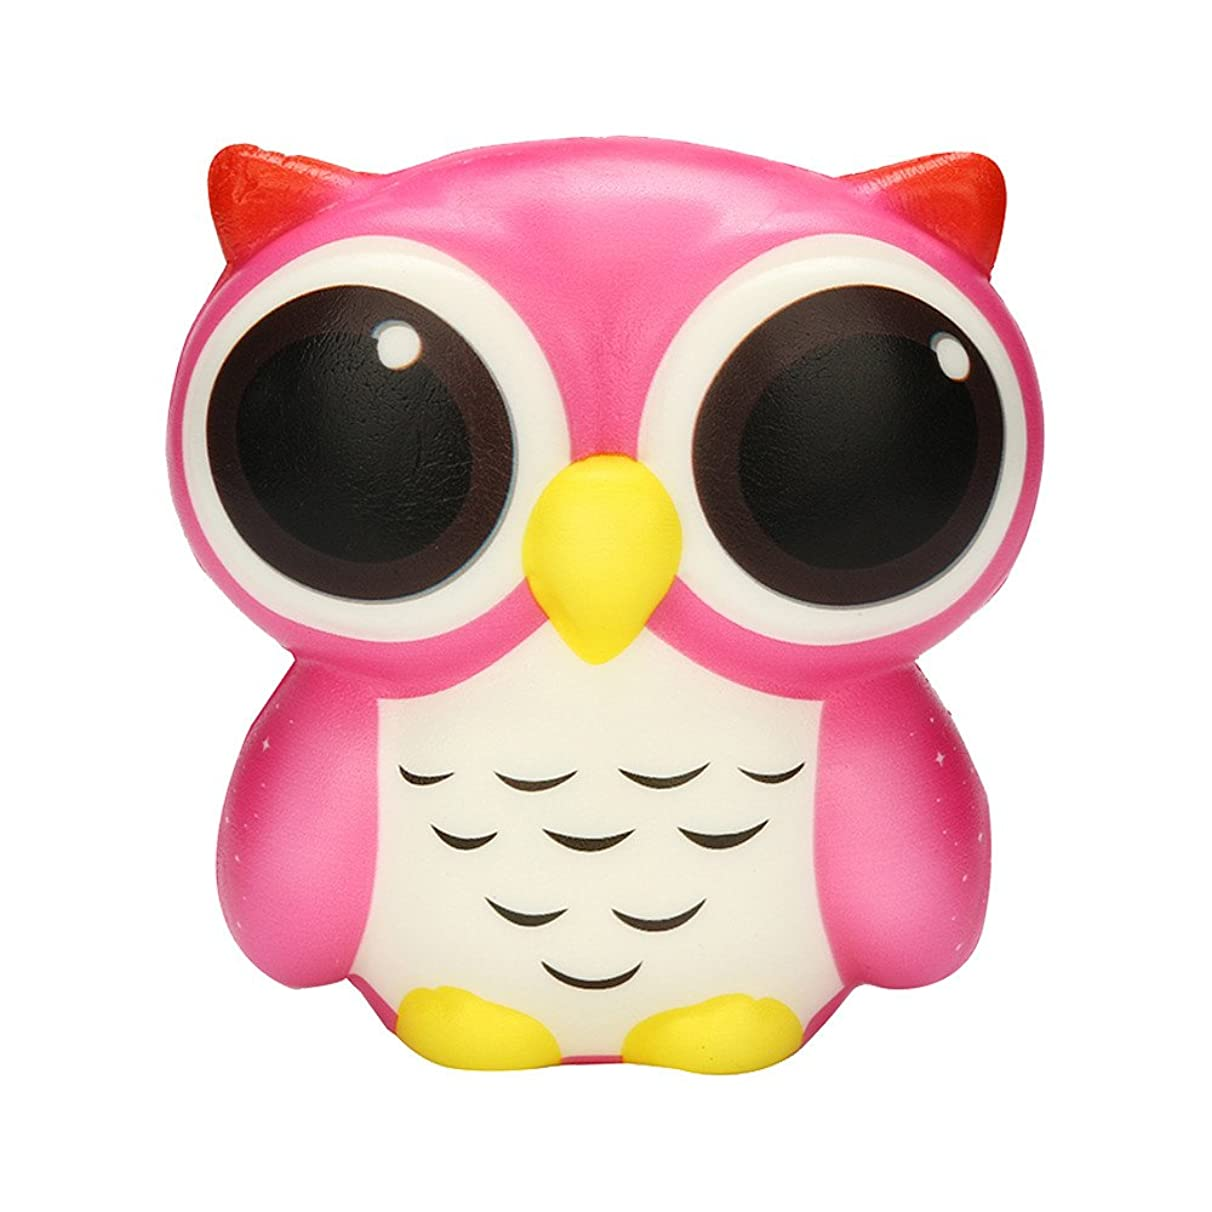 YOMXL Jumbo Squishies Slow Rising Owl Squishy Toys Soft Slow Rising Cream Scented Squeeze Decompression Toys